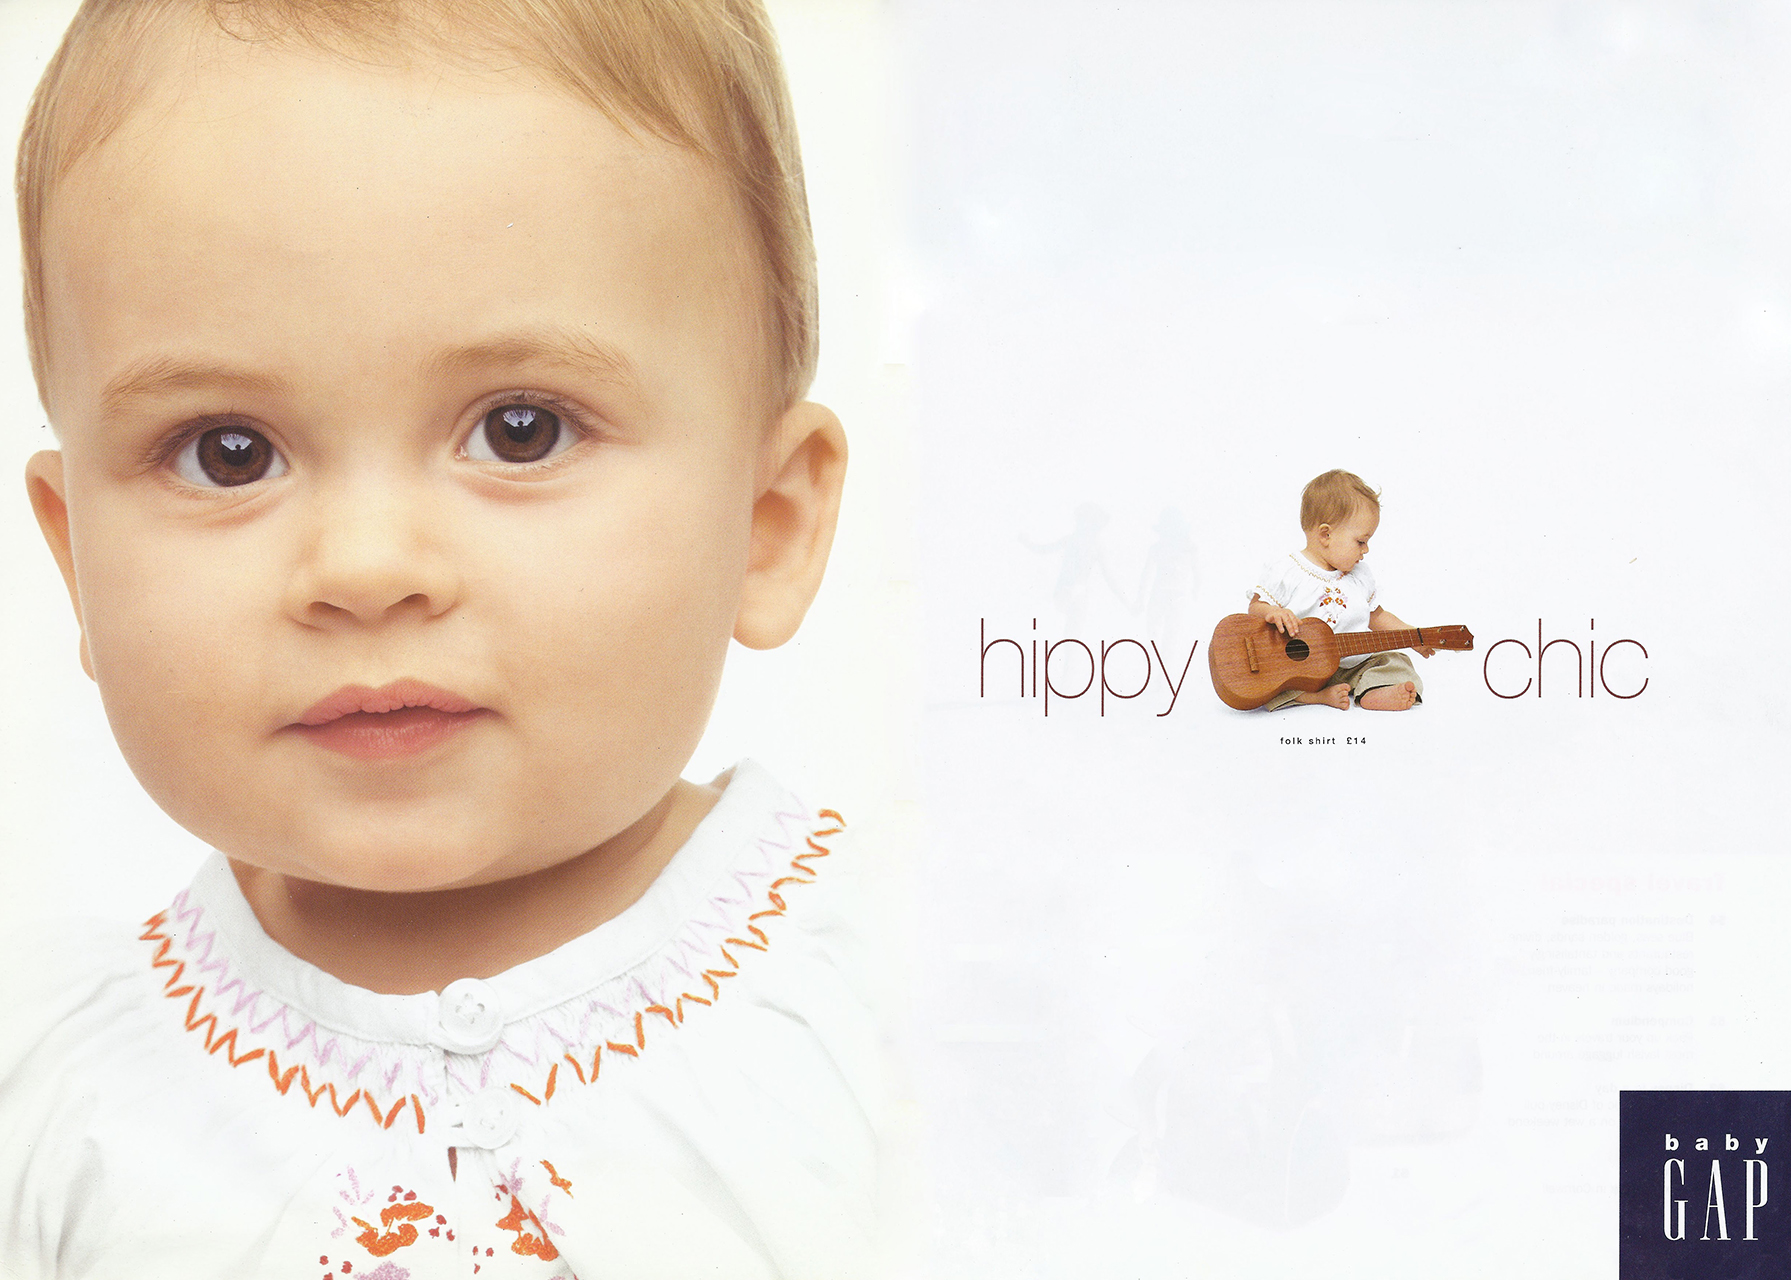 Baby Gap Flint and Kent Alex Bates Design Consulting childrenswear design image